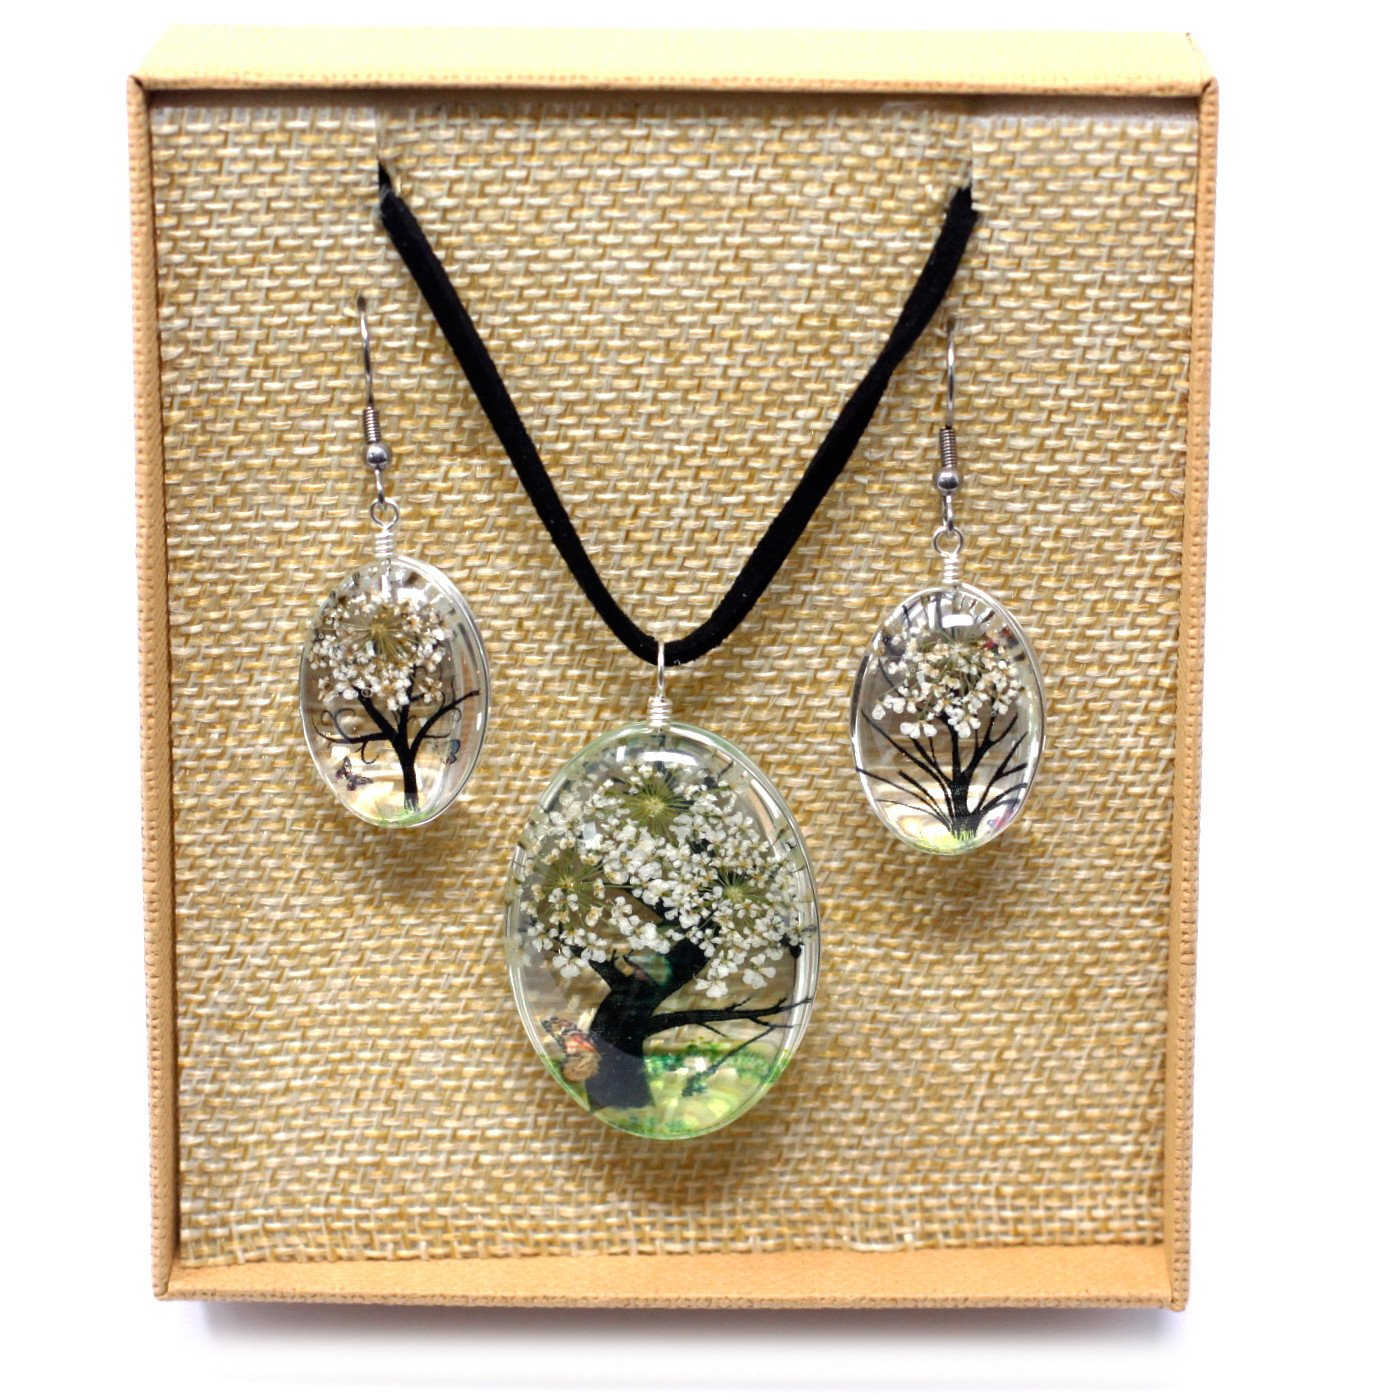 Tree of Life Necklace & Earrings set in Gift Box - White